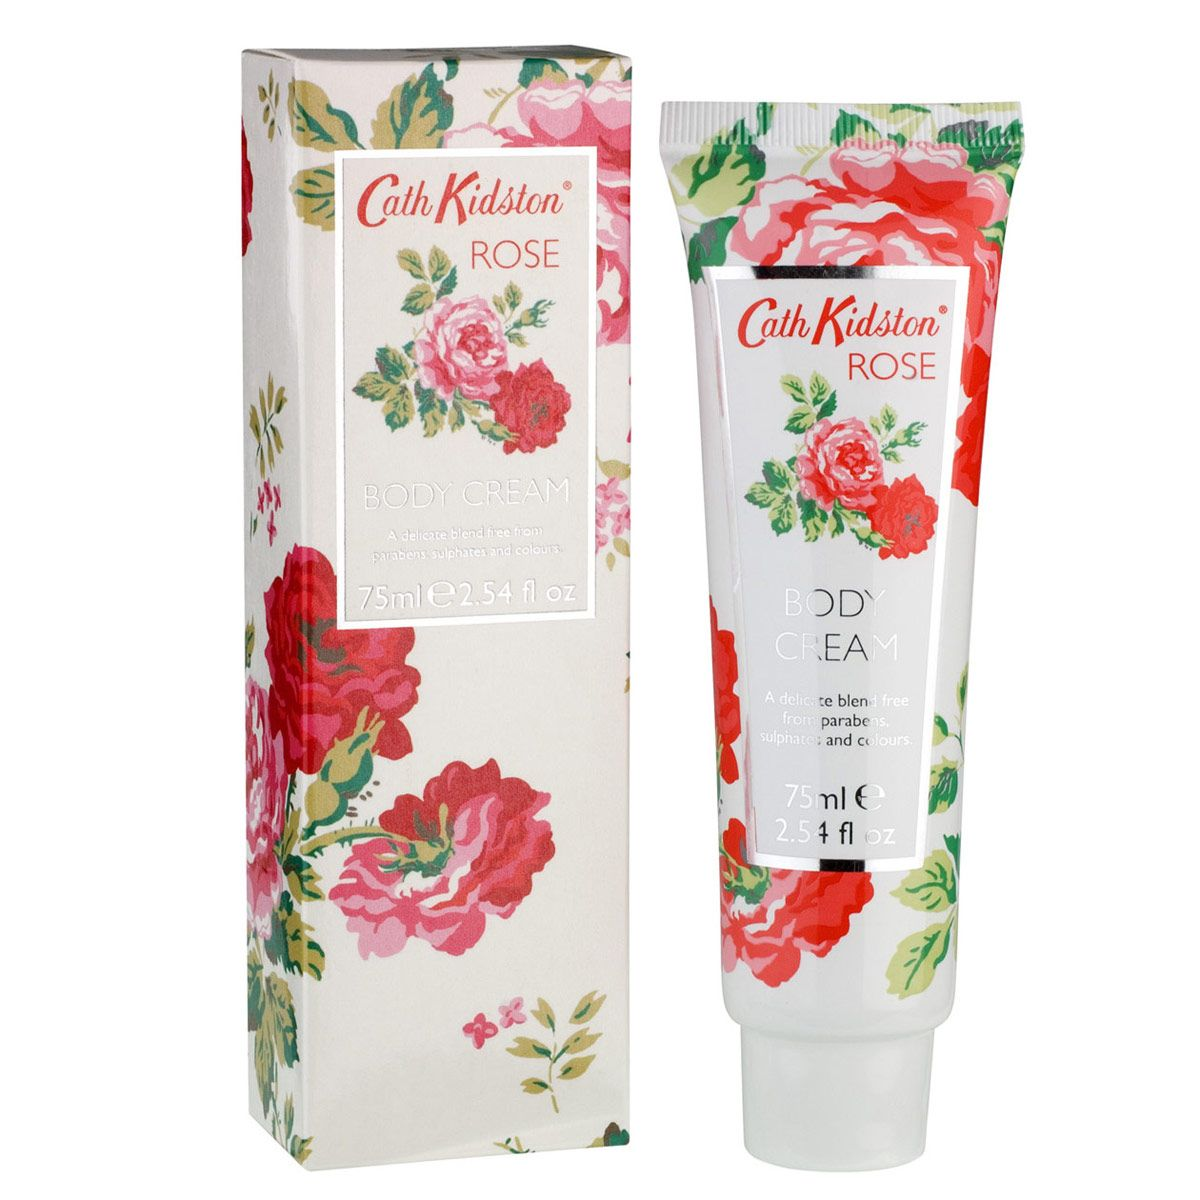 Rose Body Further Reductions Cathkidston Cath Kidston Rose